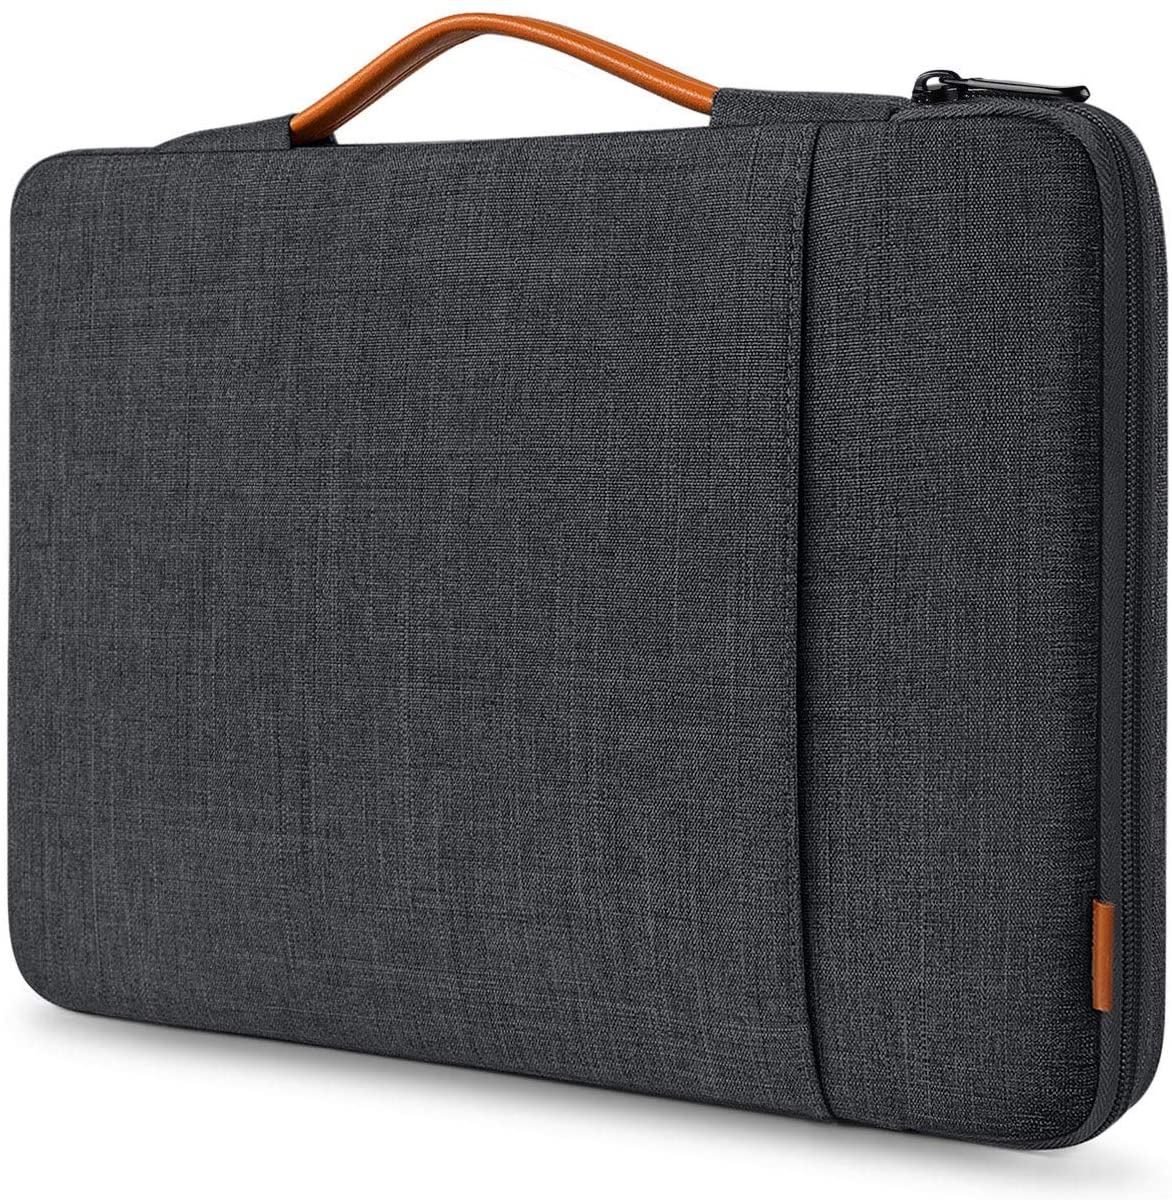 Inateck 13-13.5 Inch 360 Protective Laptop Sleeve Carrying Case Bag Compatible with 13 inch MacBook Pro 2012-2020, MacBook Air 2010-2020, 12.3 Surface Pro X/7/6/5/4/3, 13.5 Surface Laptop-Black Gray